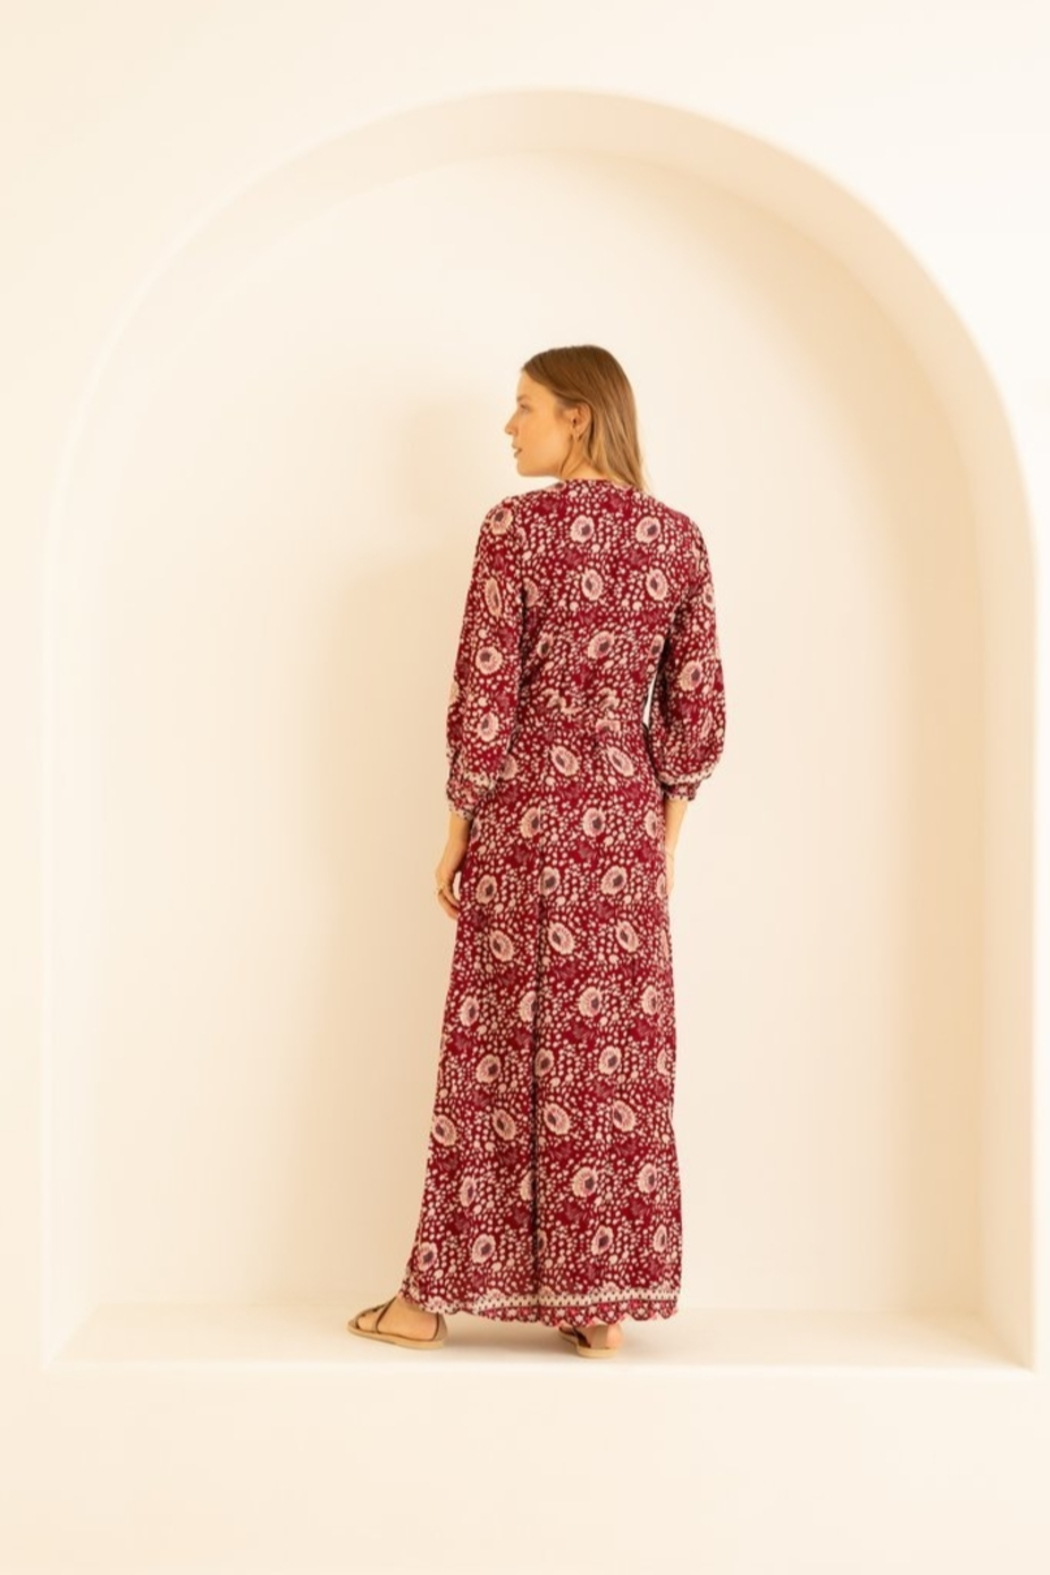 Natalie Martin Kate Long Sleeve Wrap Dress - Vintage Flowers Red - Front Full Image